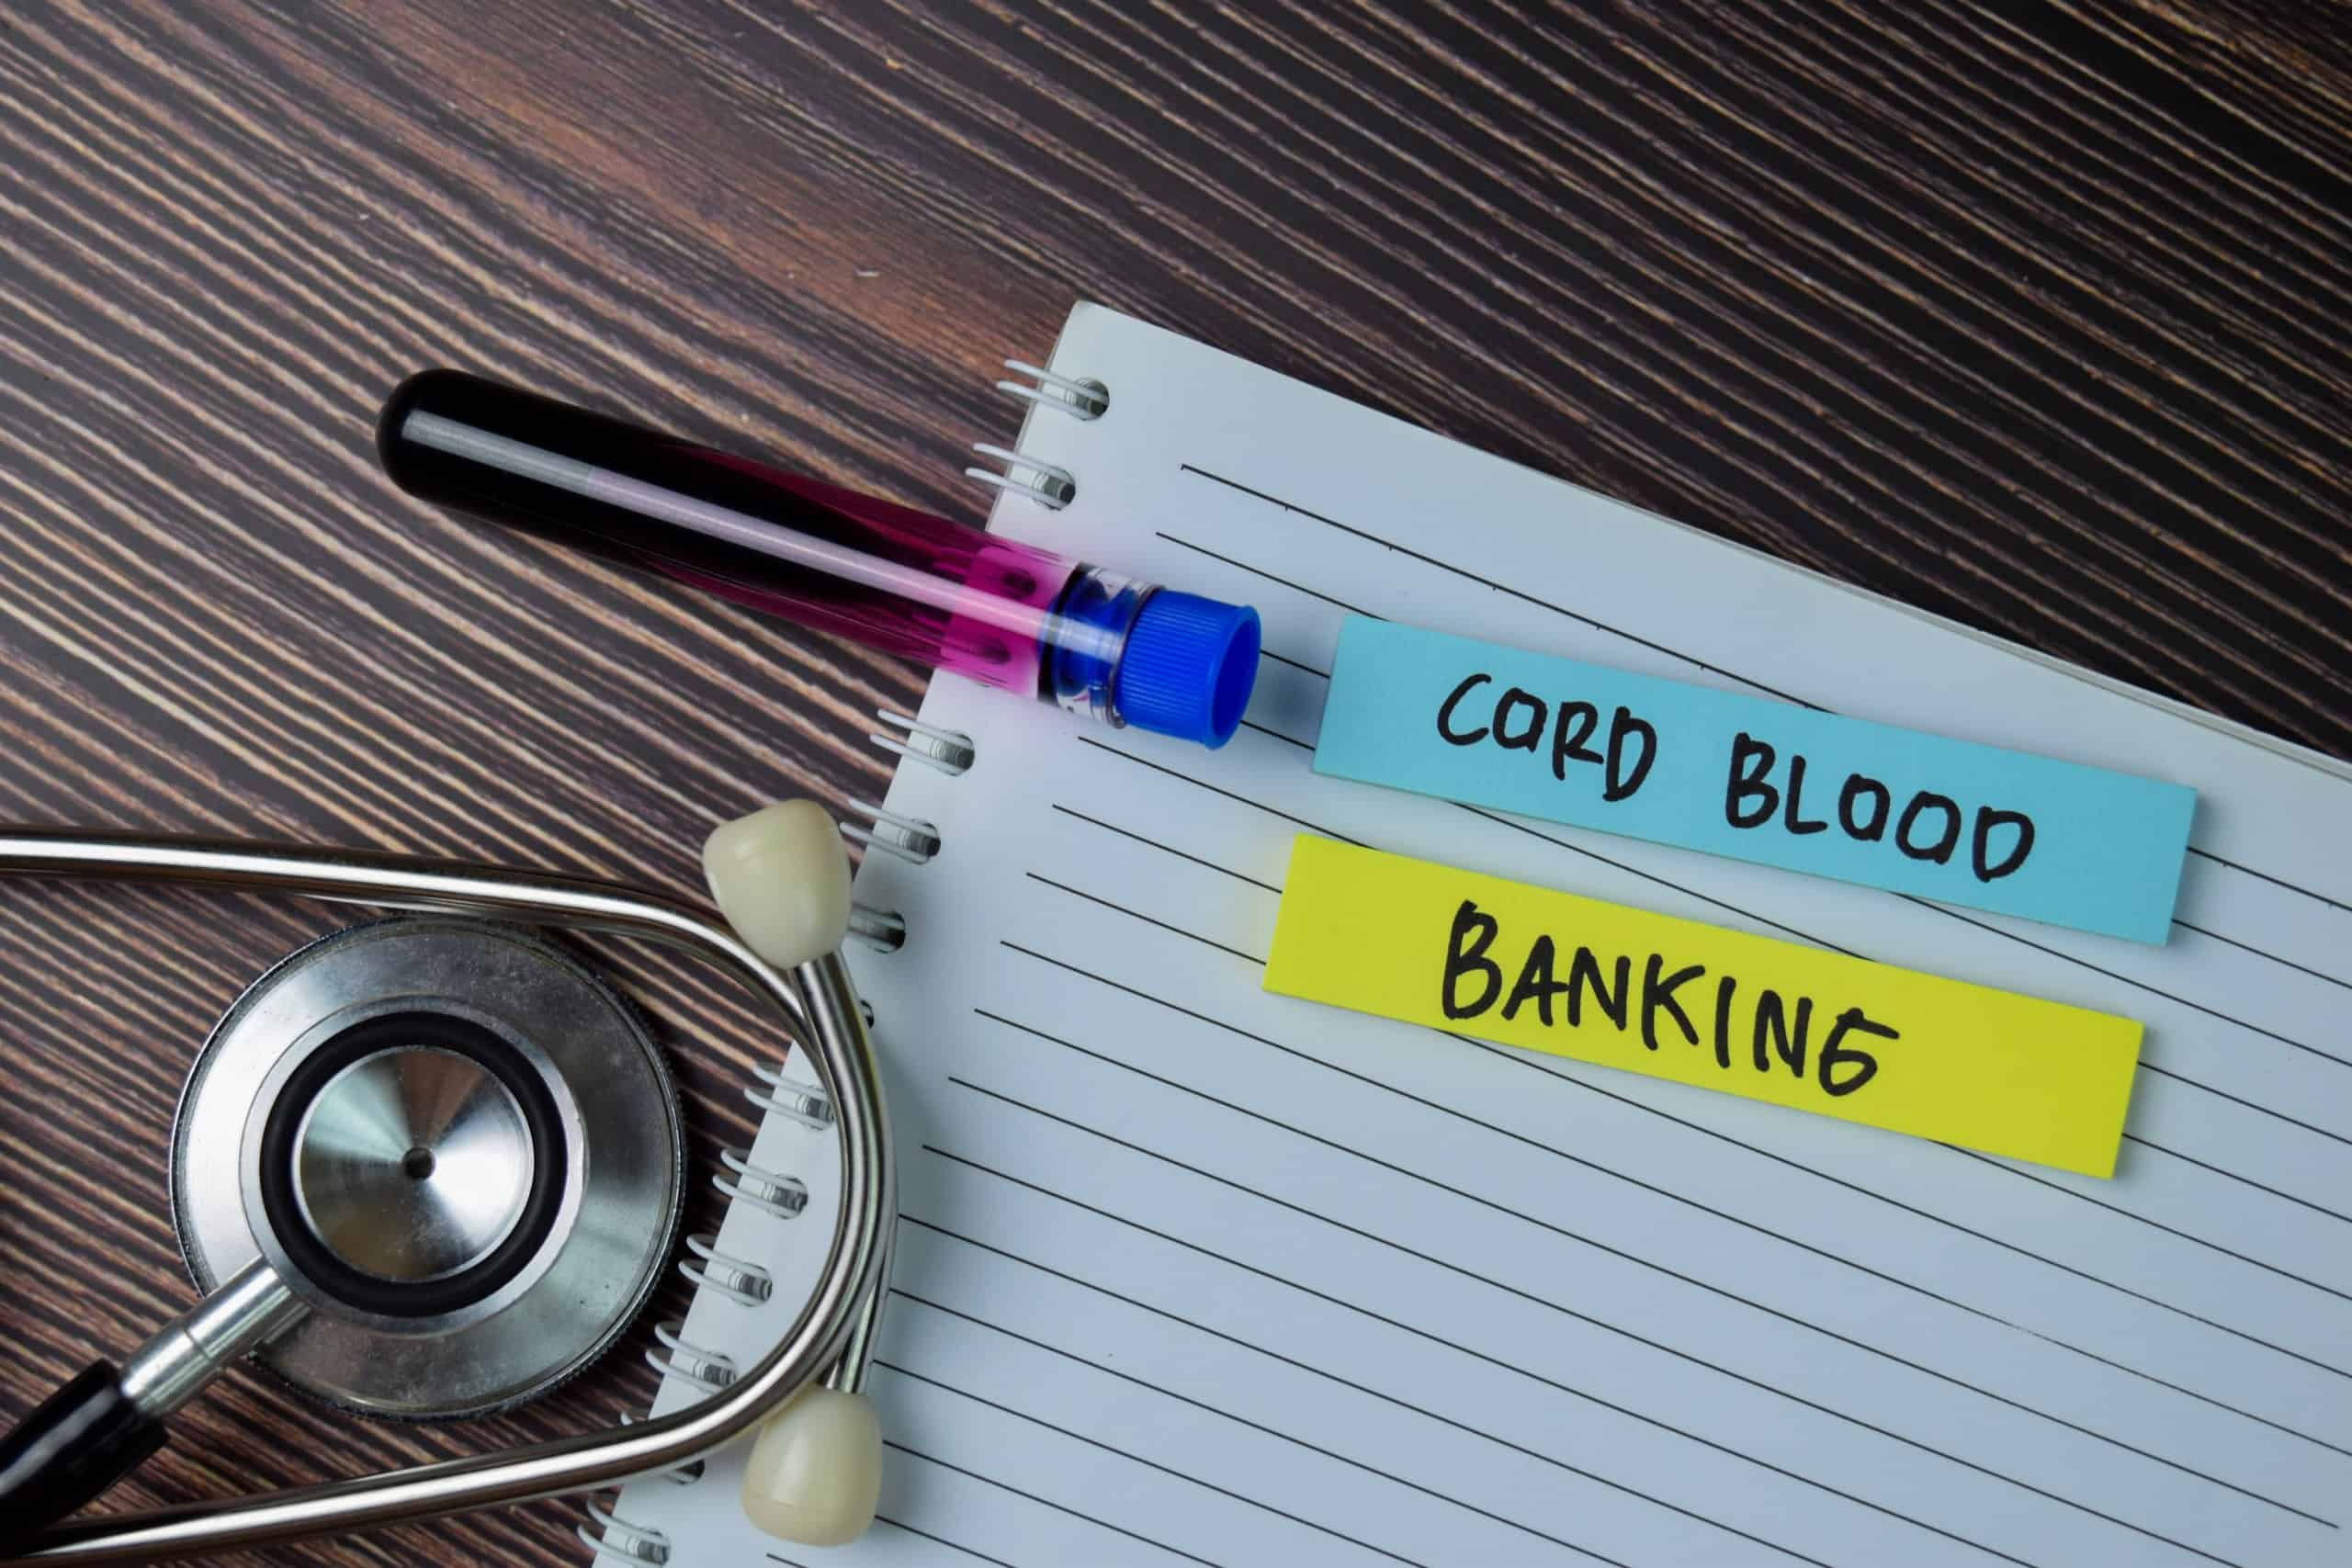 Cord Blood Banking: Private V/S Public Banking